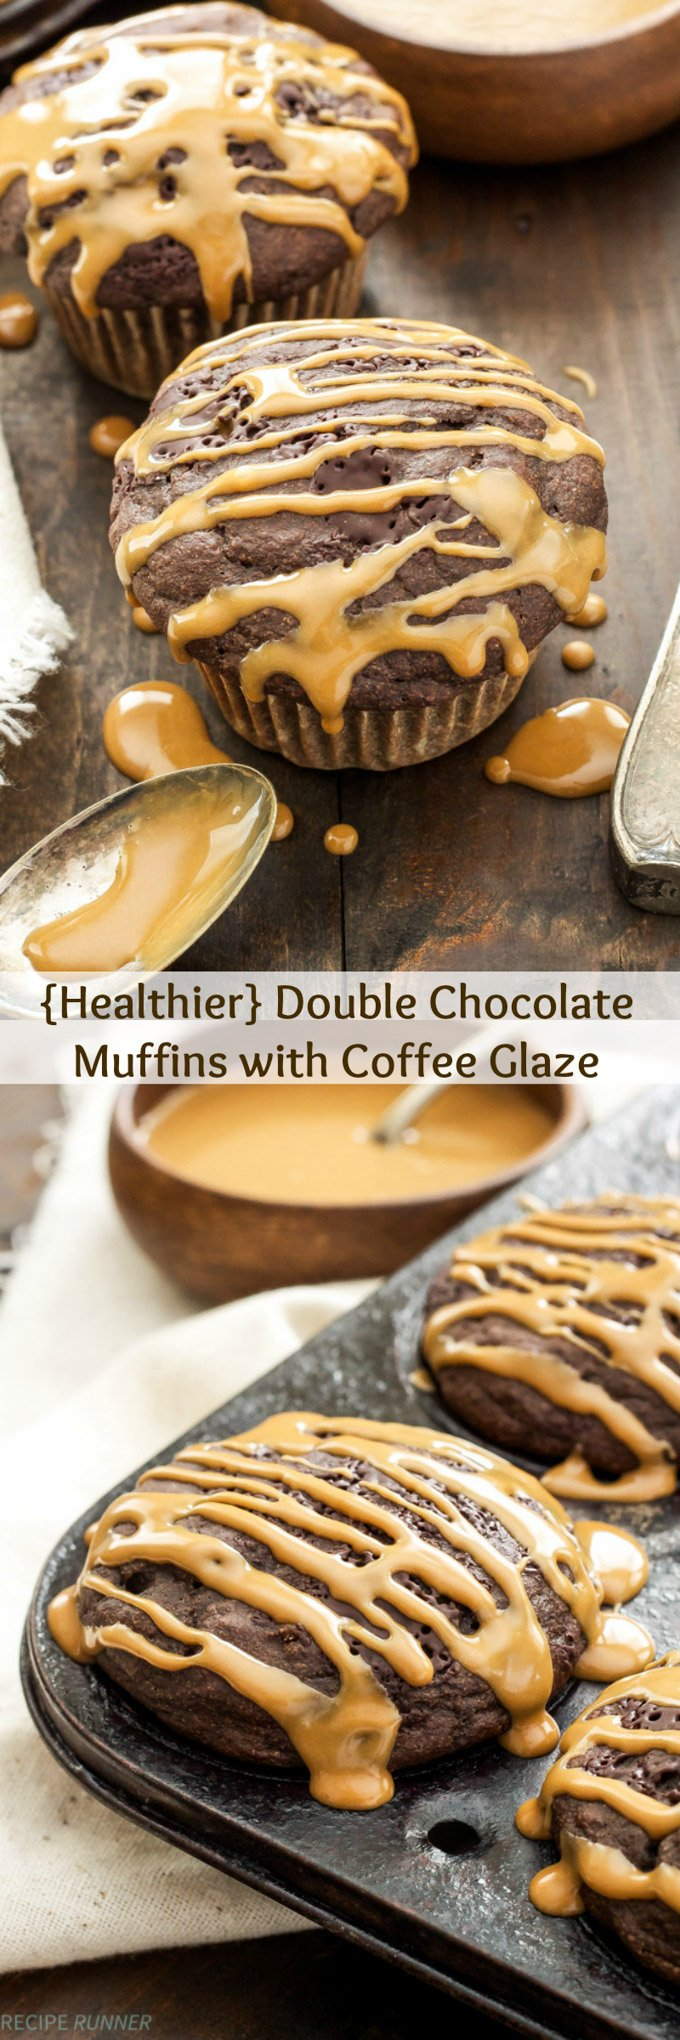 Healthier Double Chocolate Muffins with Coffee Glaze | All the decadence of a chocolate cupcake, but at less than 180 calories per muffin they're perfectly acceptable for breakfast!